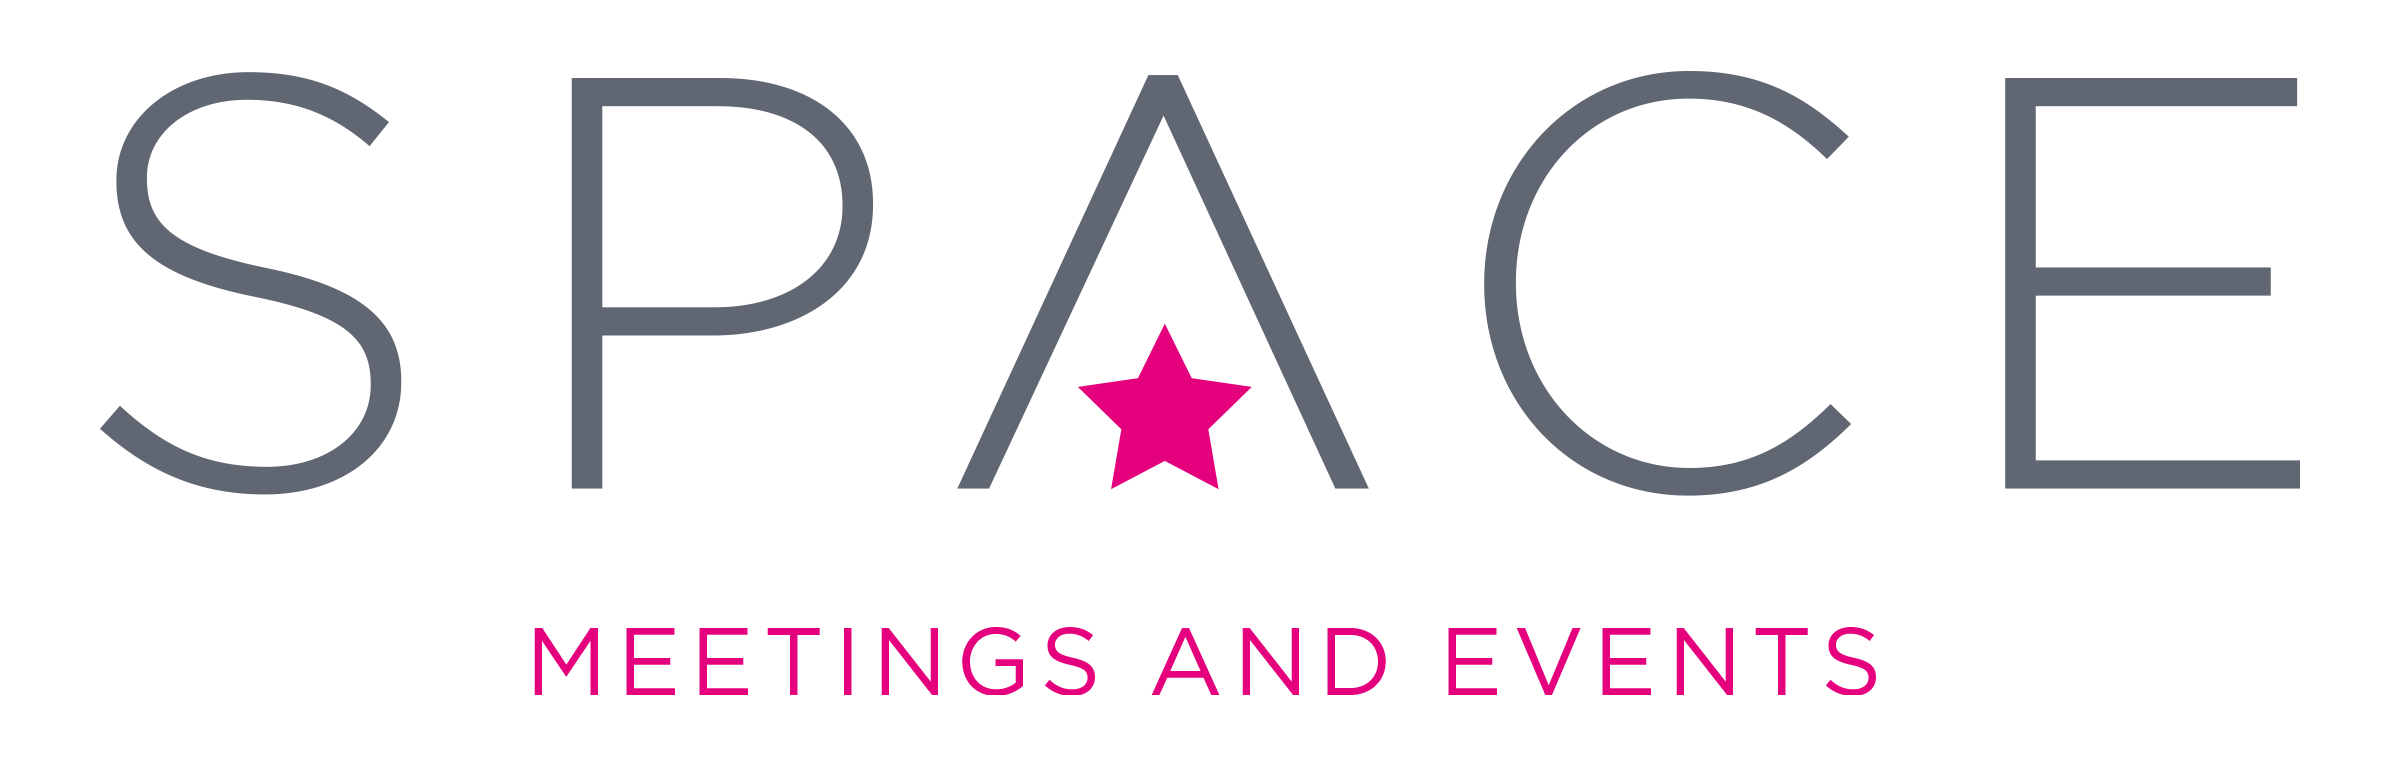 Space - Meetings and Events